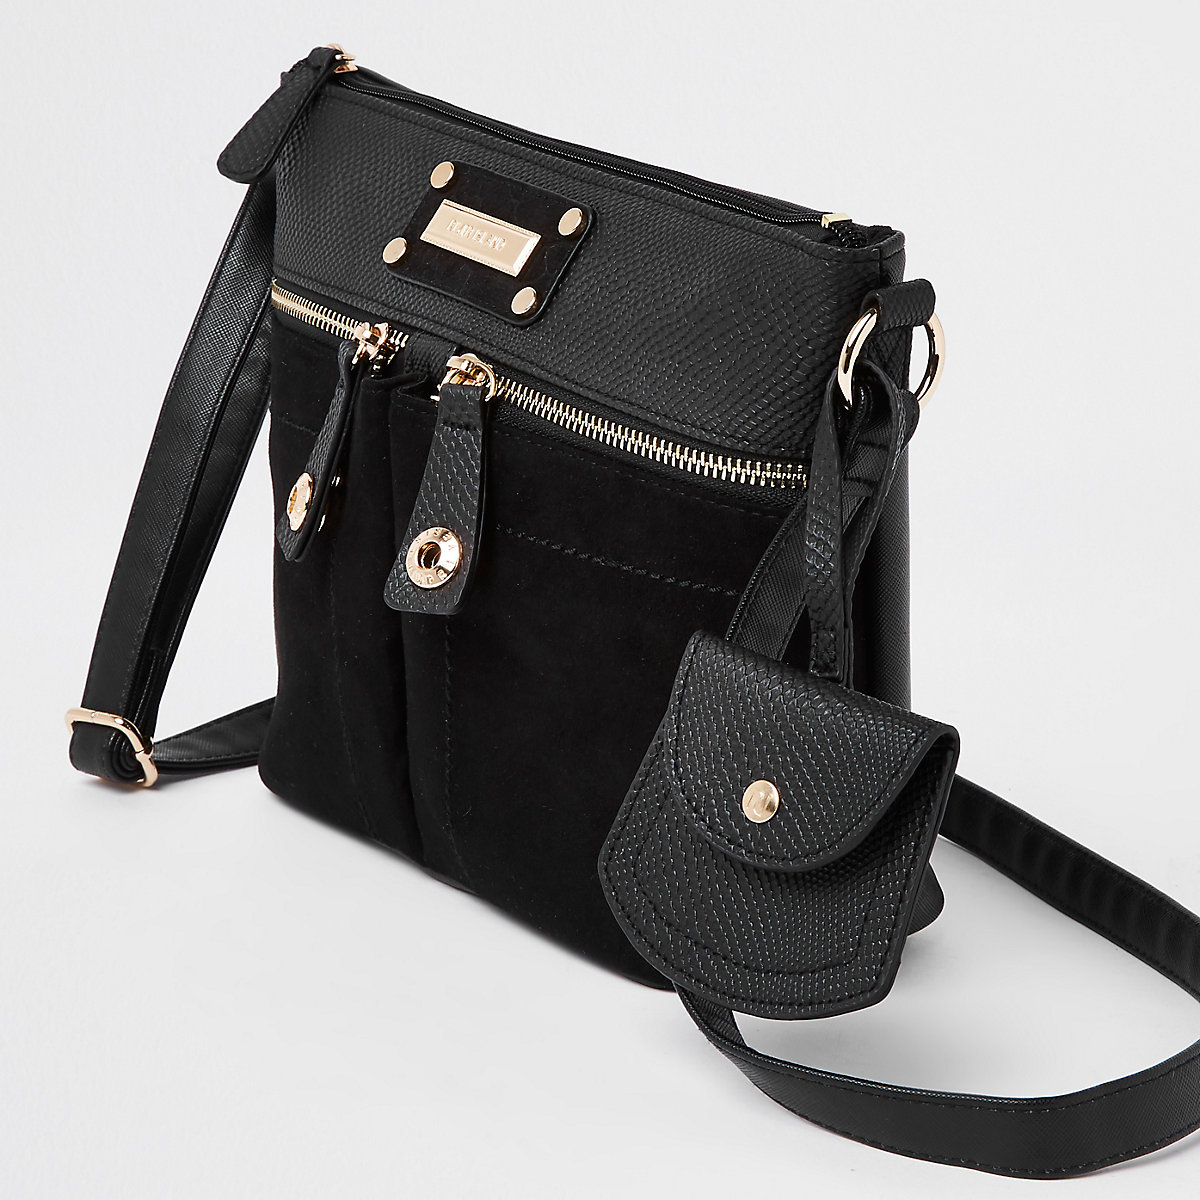 8d10d62dc4 Black double pocket cross body bag - Cross Body Bags - Bags   Purses - women